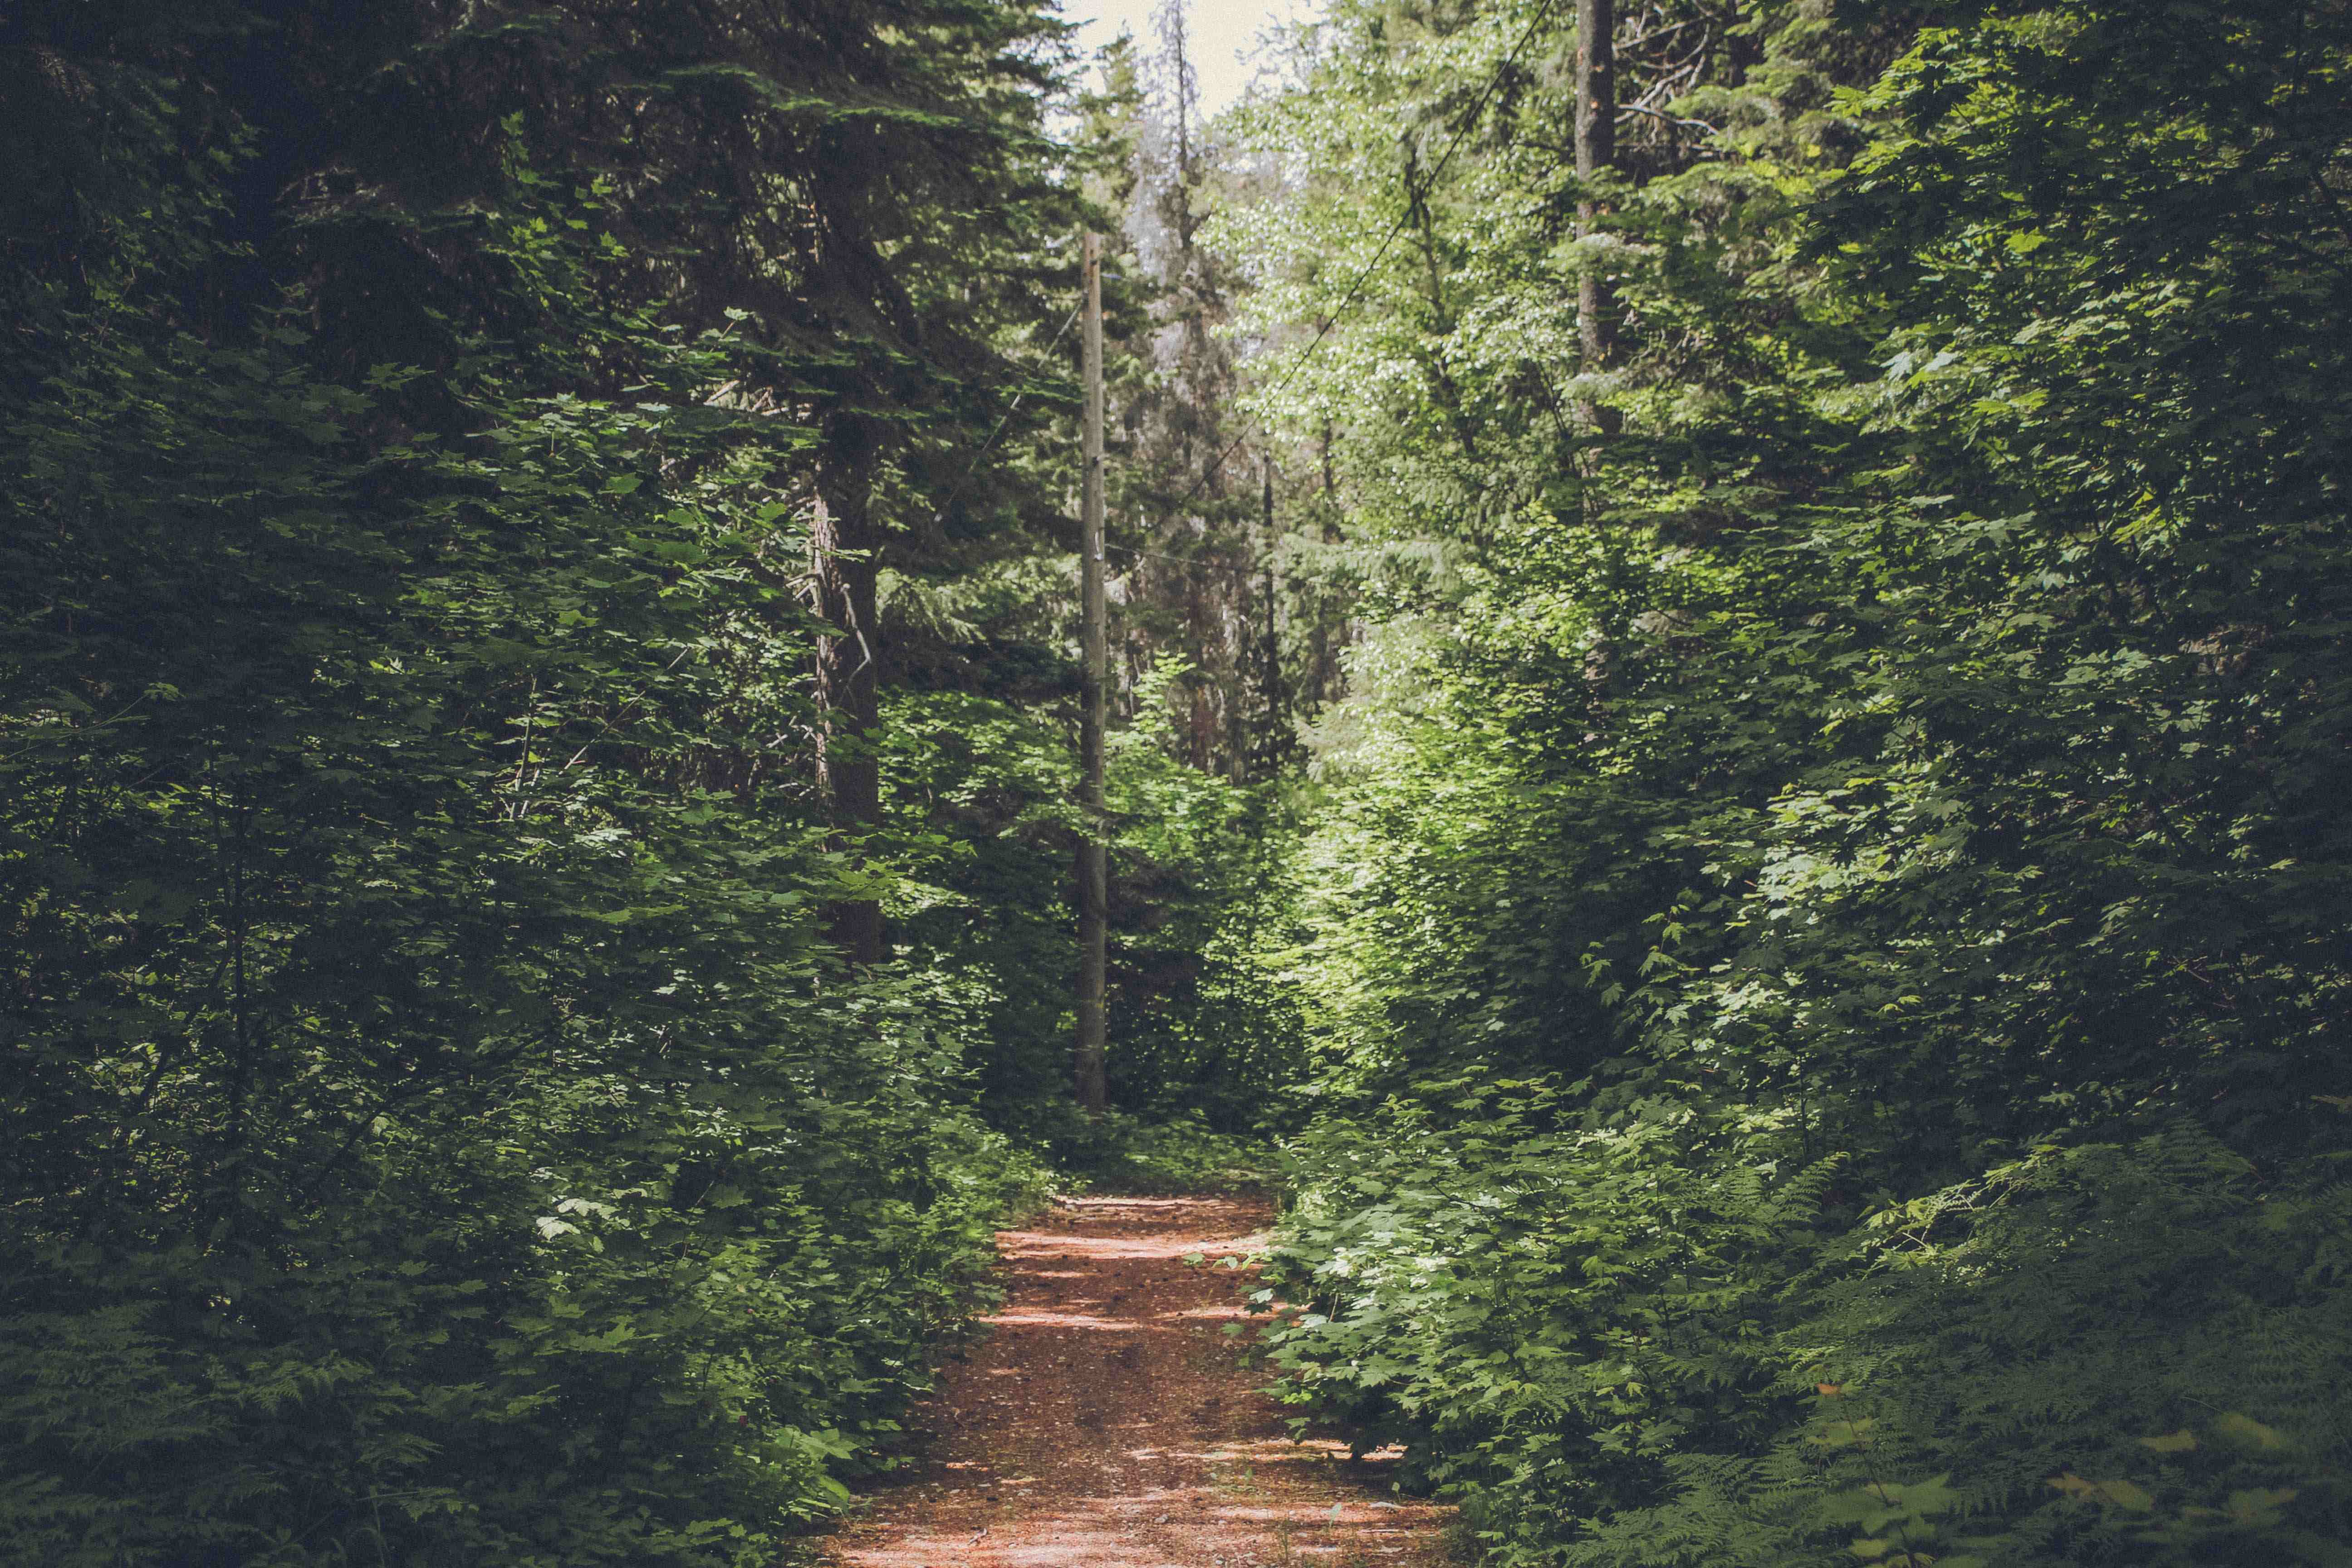 Mental health benefits of being outdoors